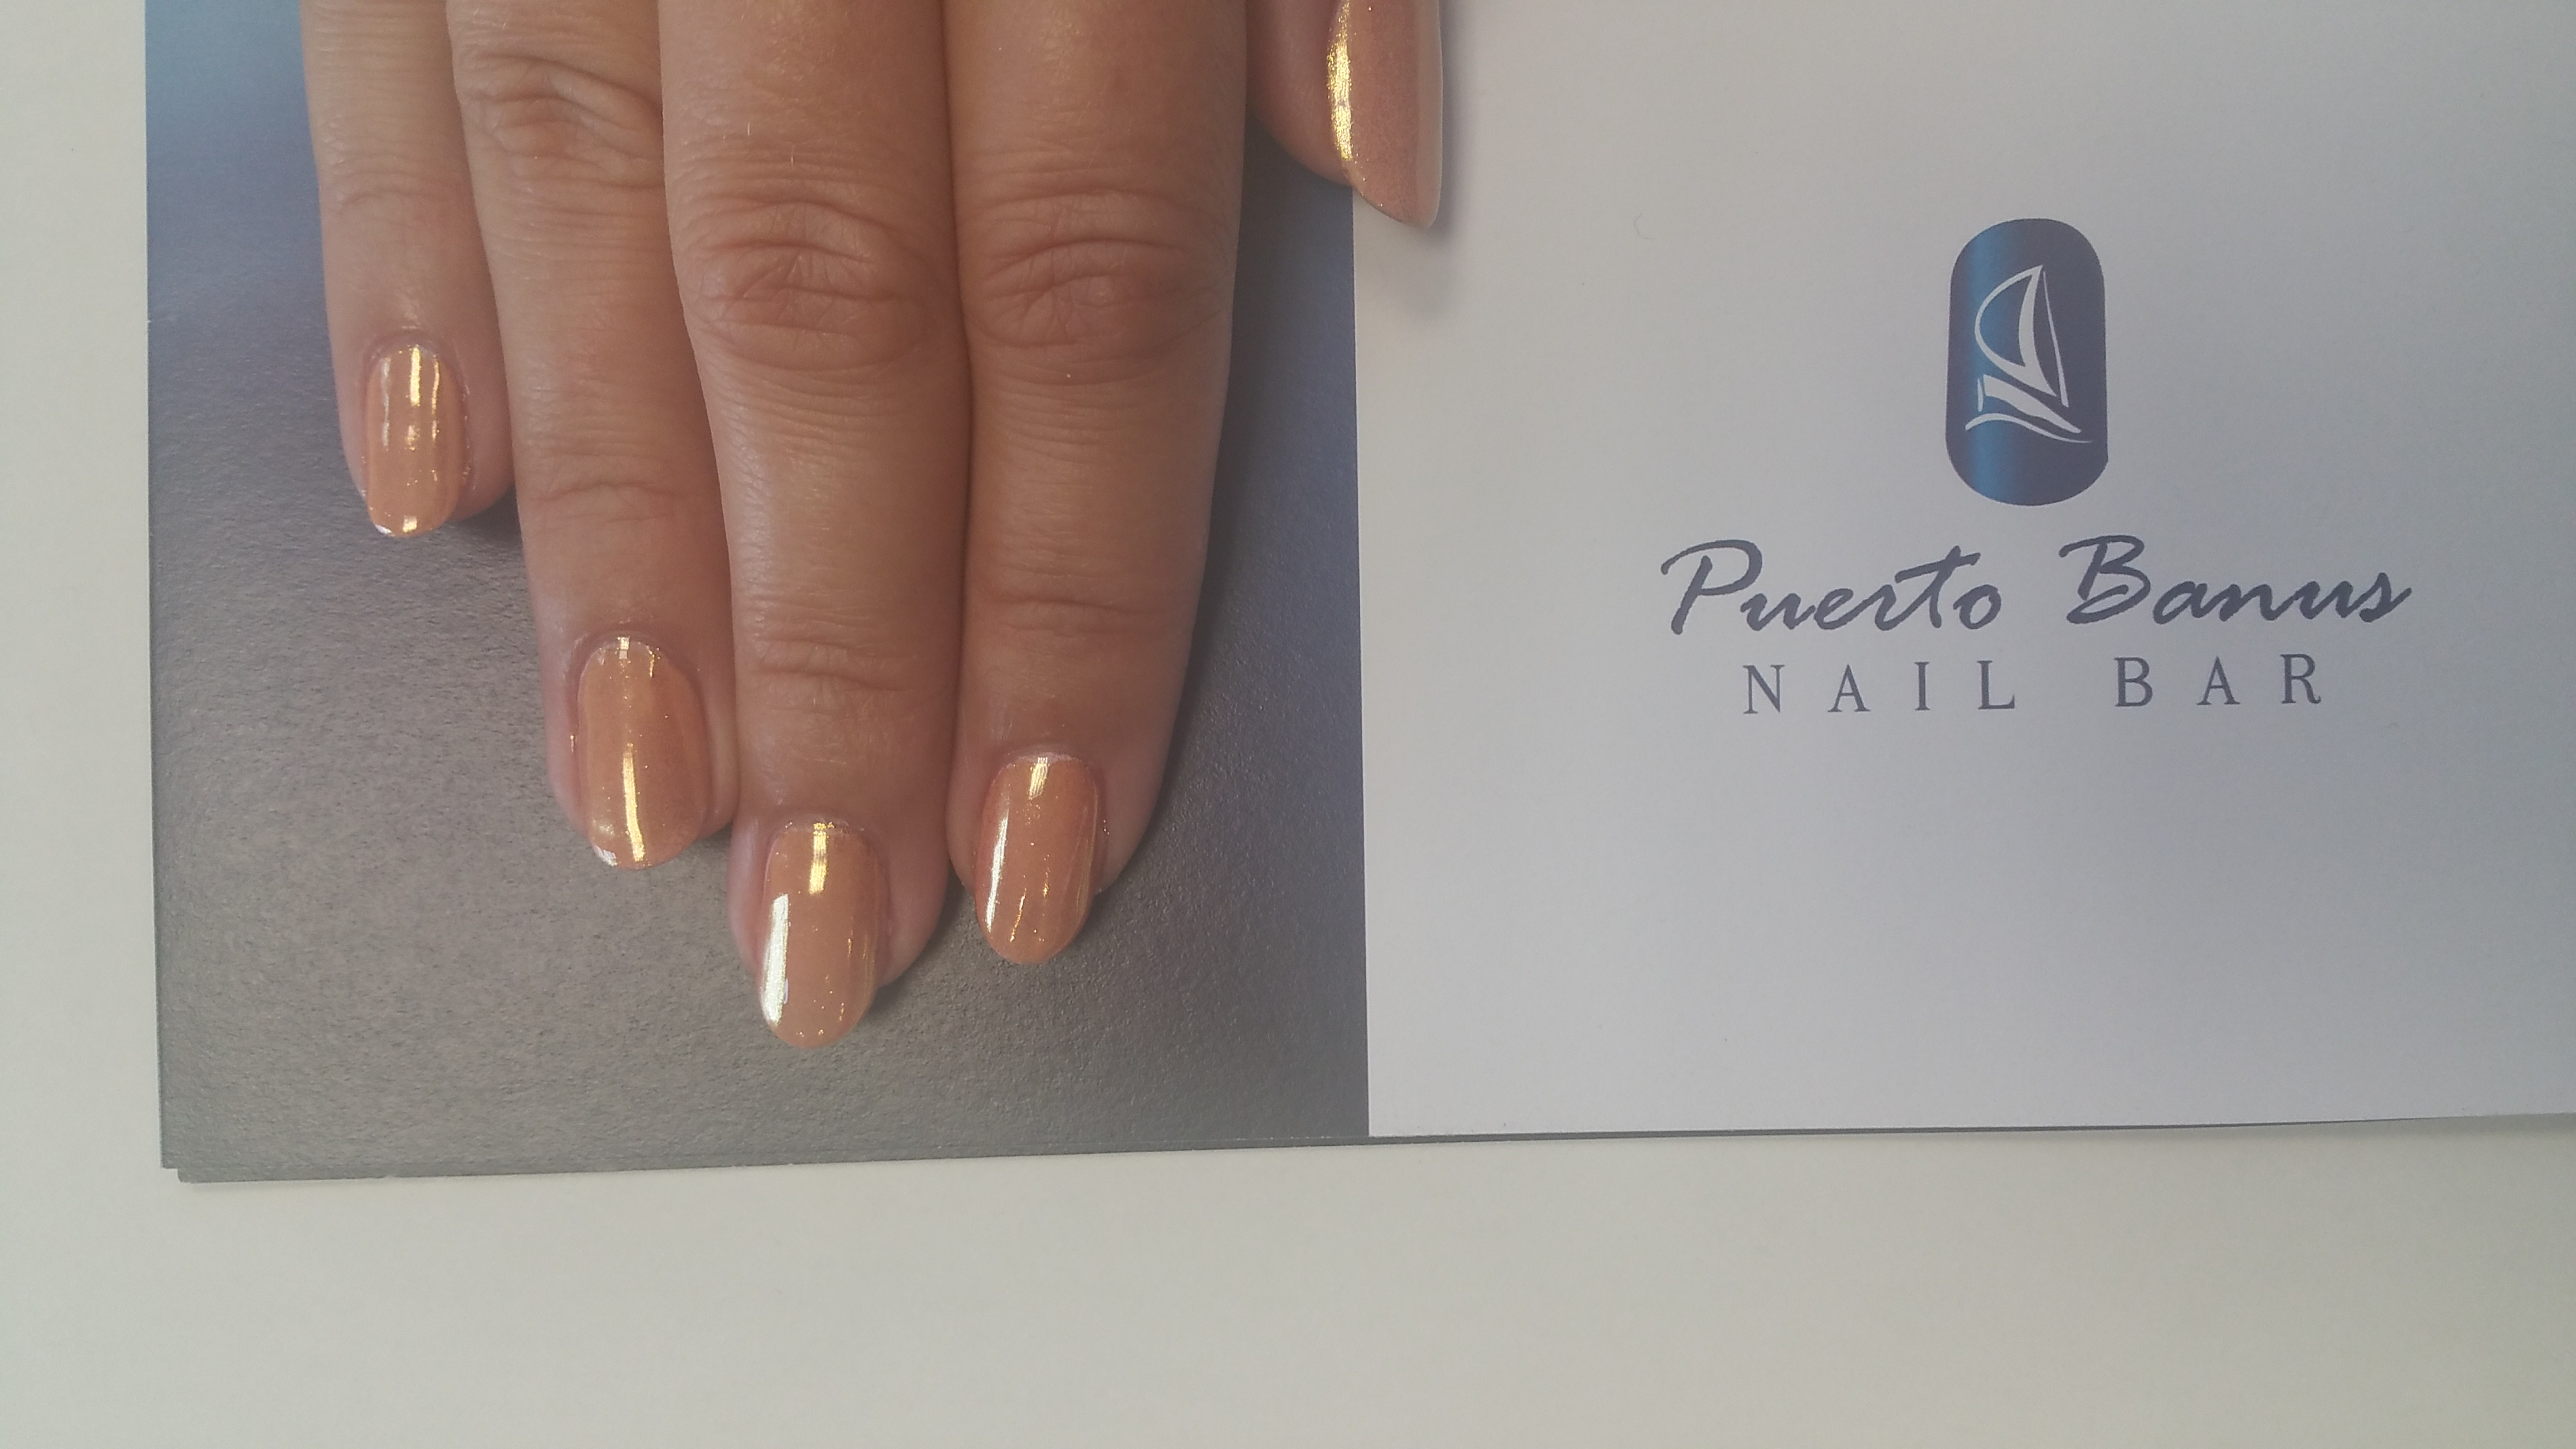 Mirror nails - Puerto Banus Nail Bar Cork